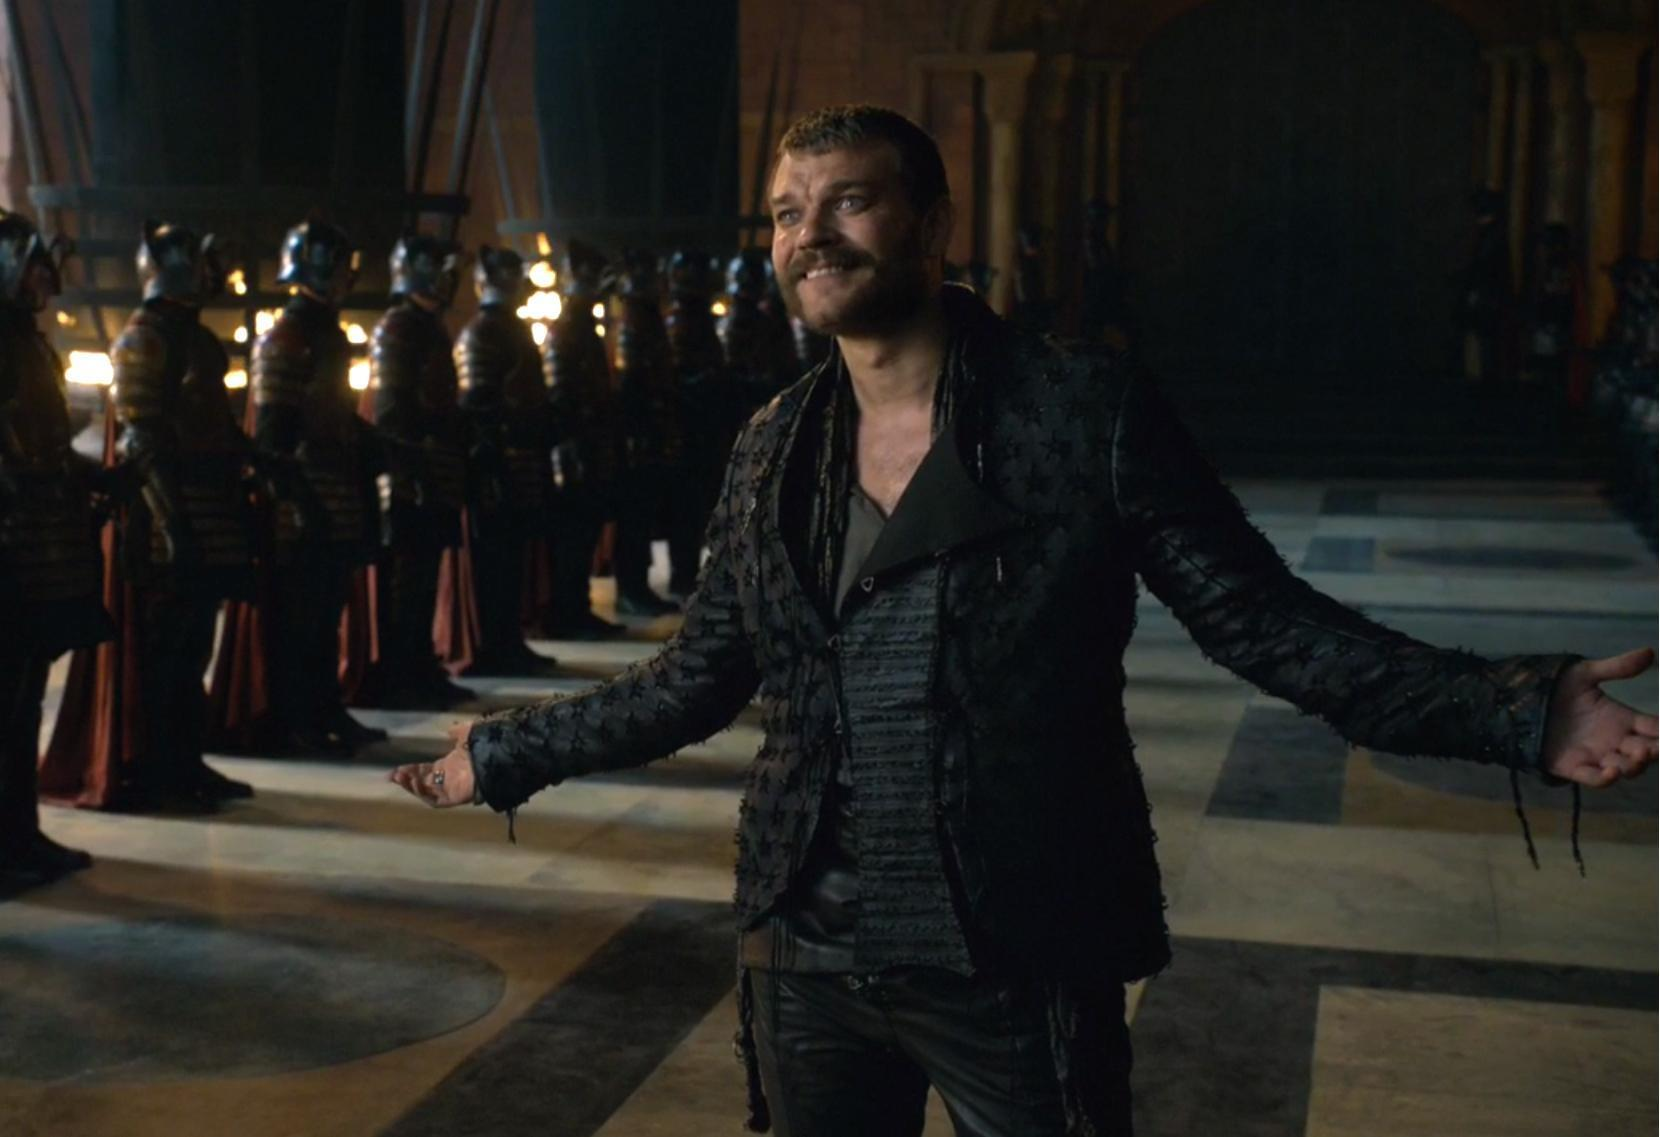 Euron Greyjoy gets what's coming to him